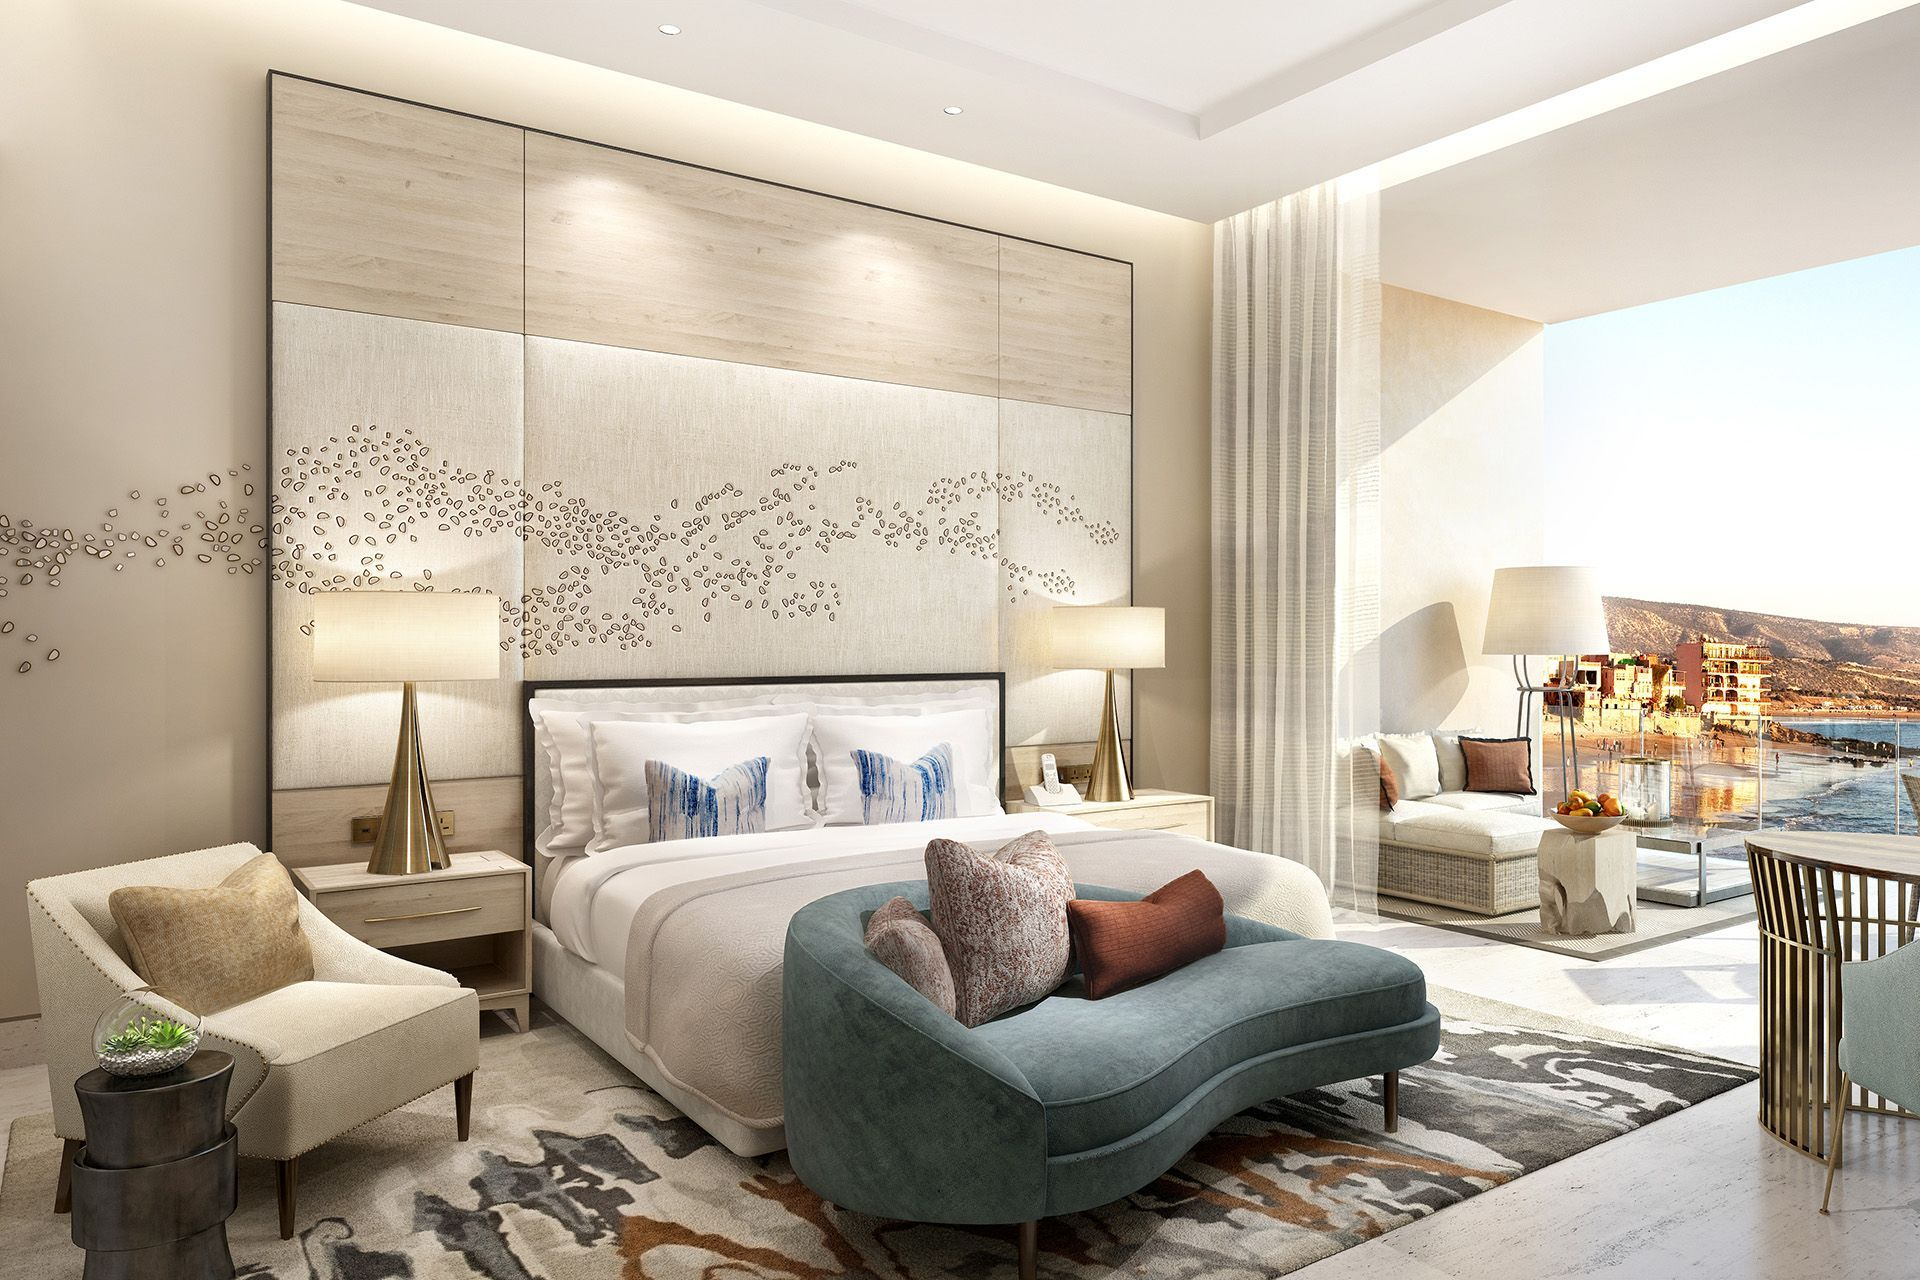 Four seasons taghazout interior designers wimberly for Hotel bedroom designs pictures